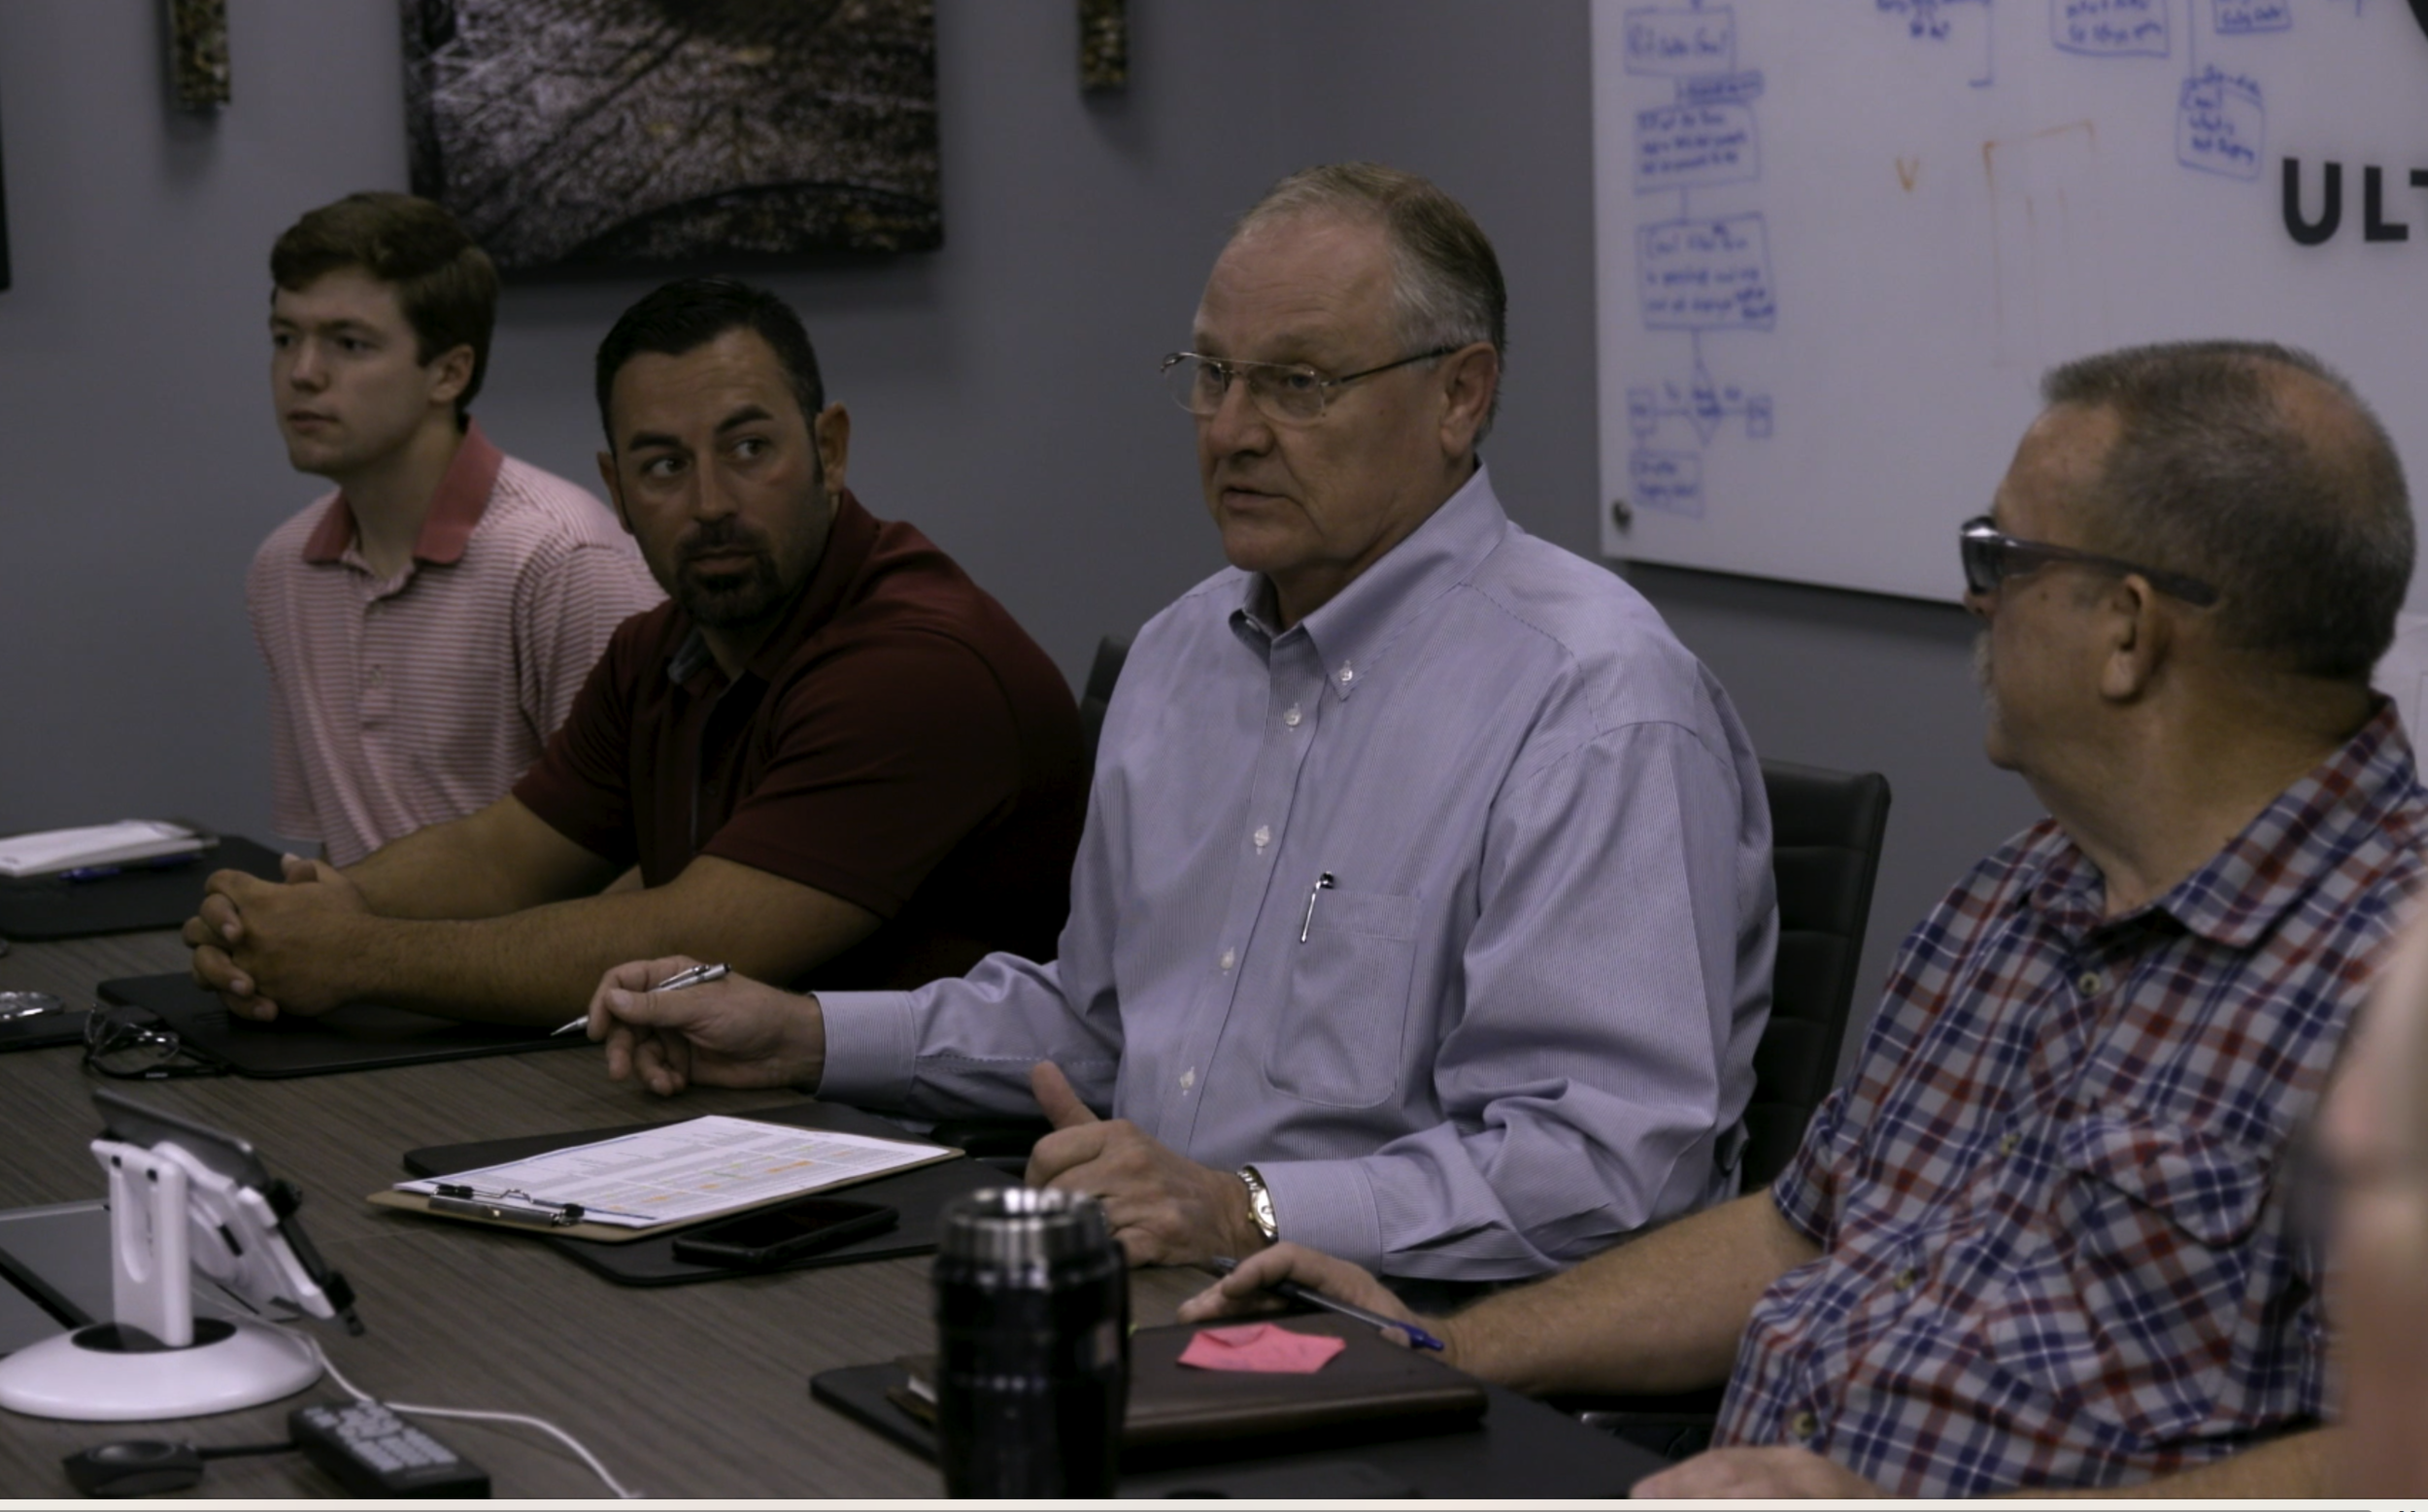 Truly authentic: we captured shots in this actual weekly Friday morning meeting with the CEO.